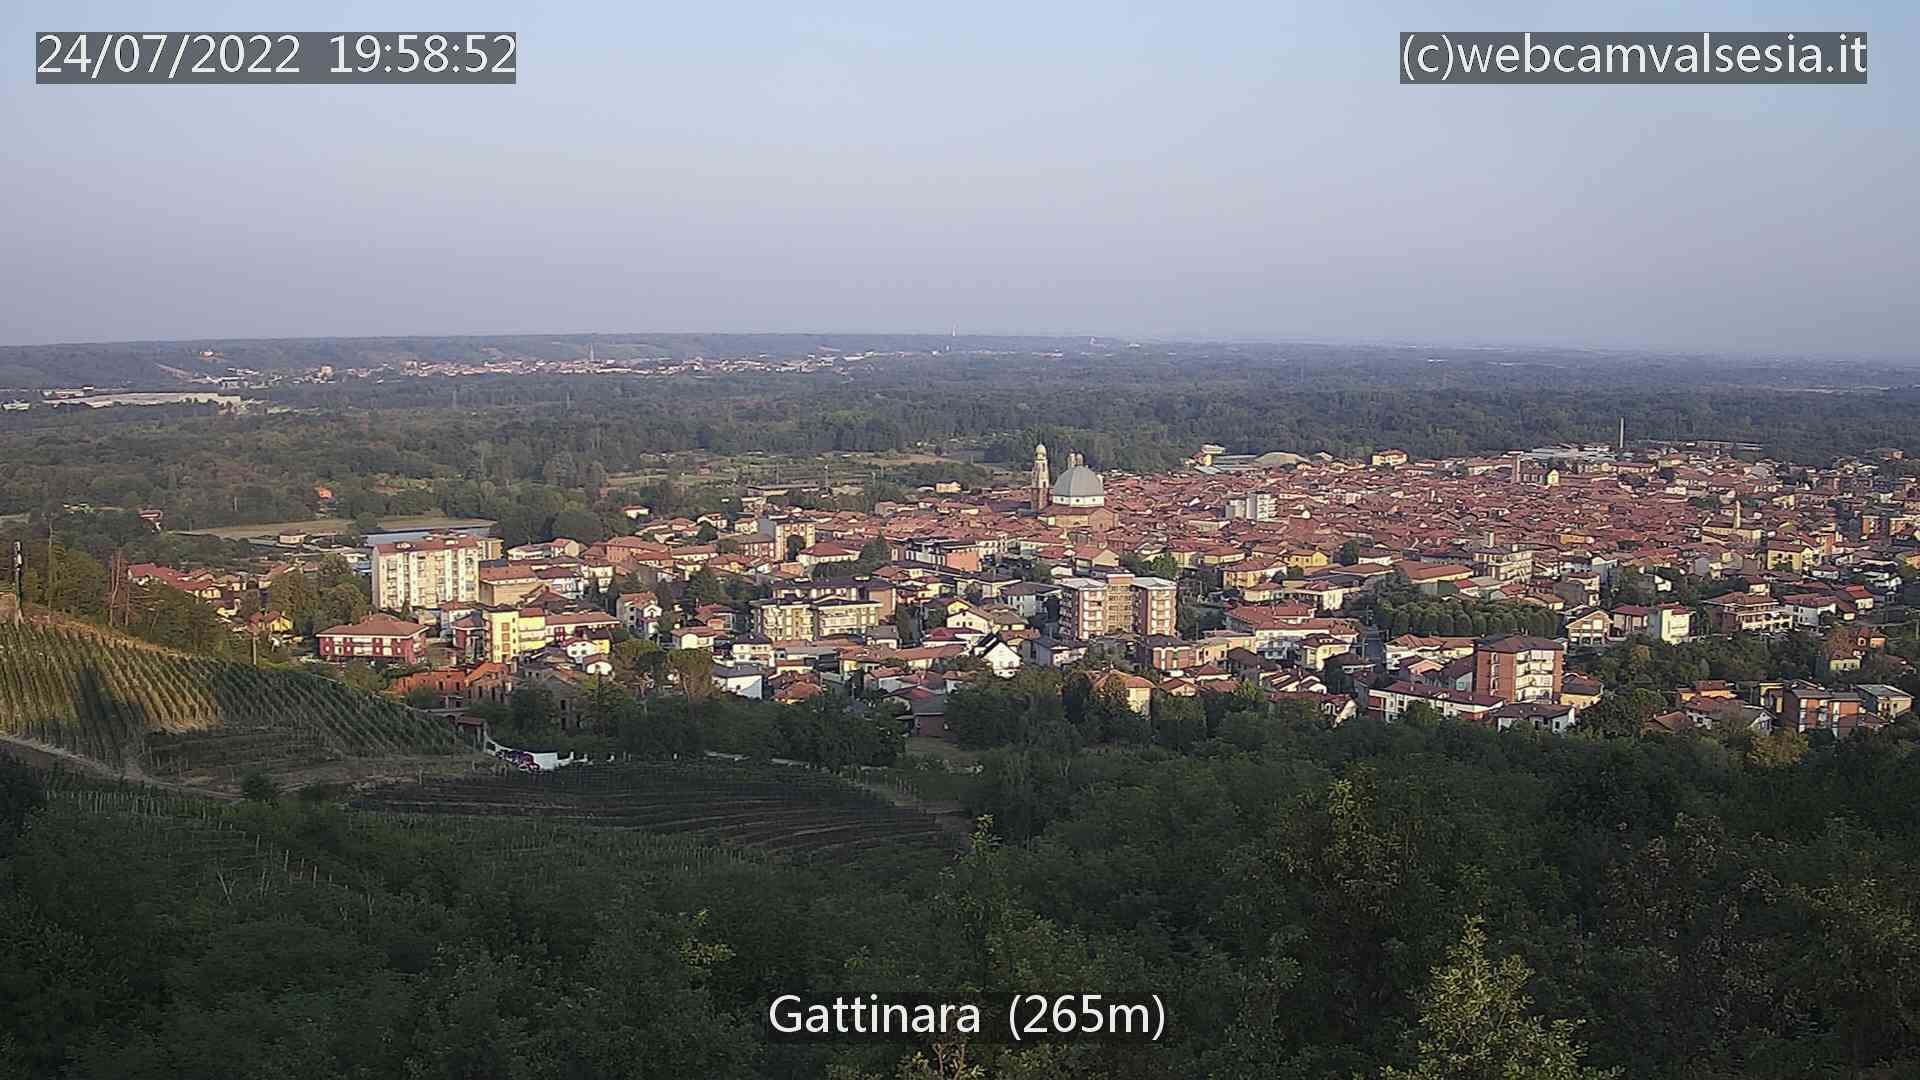 webcam valsesia Gattinara 3